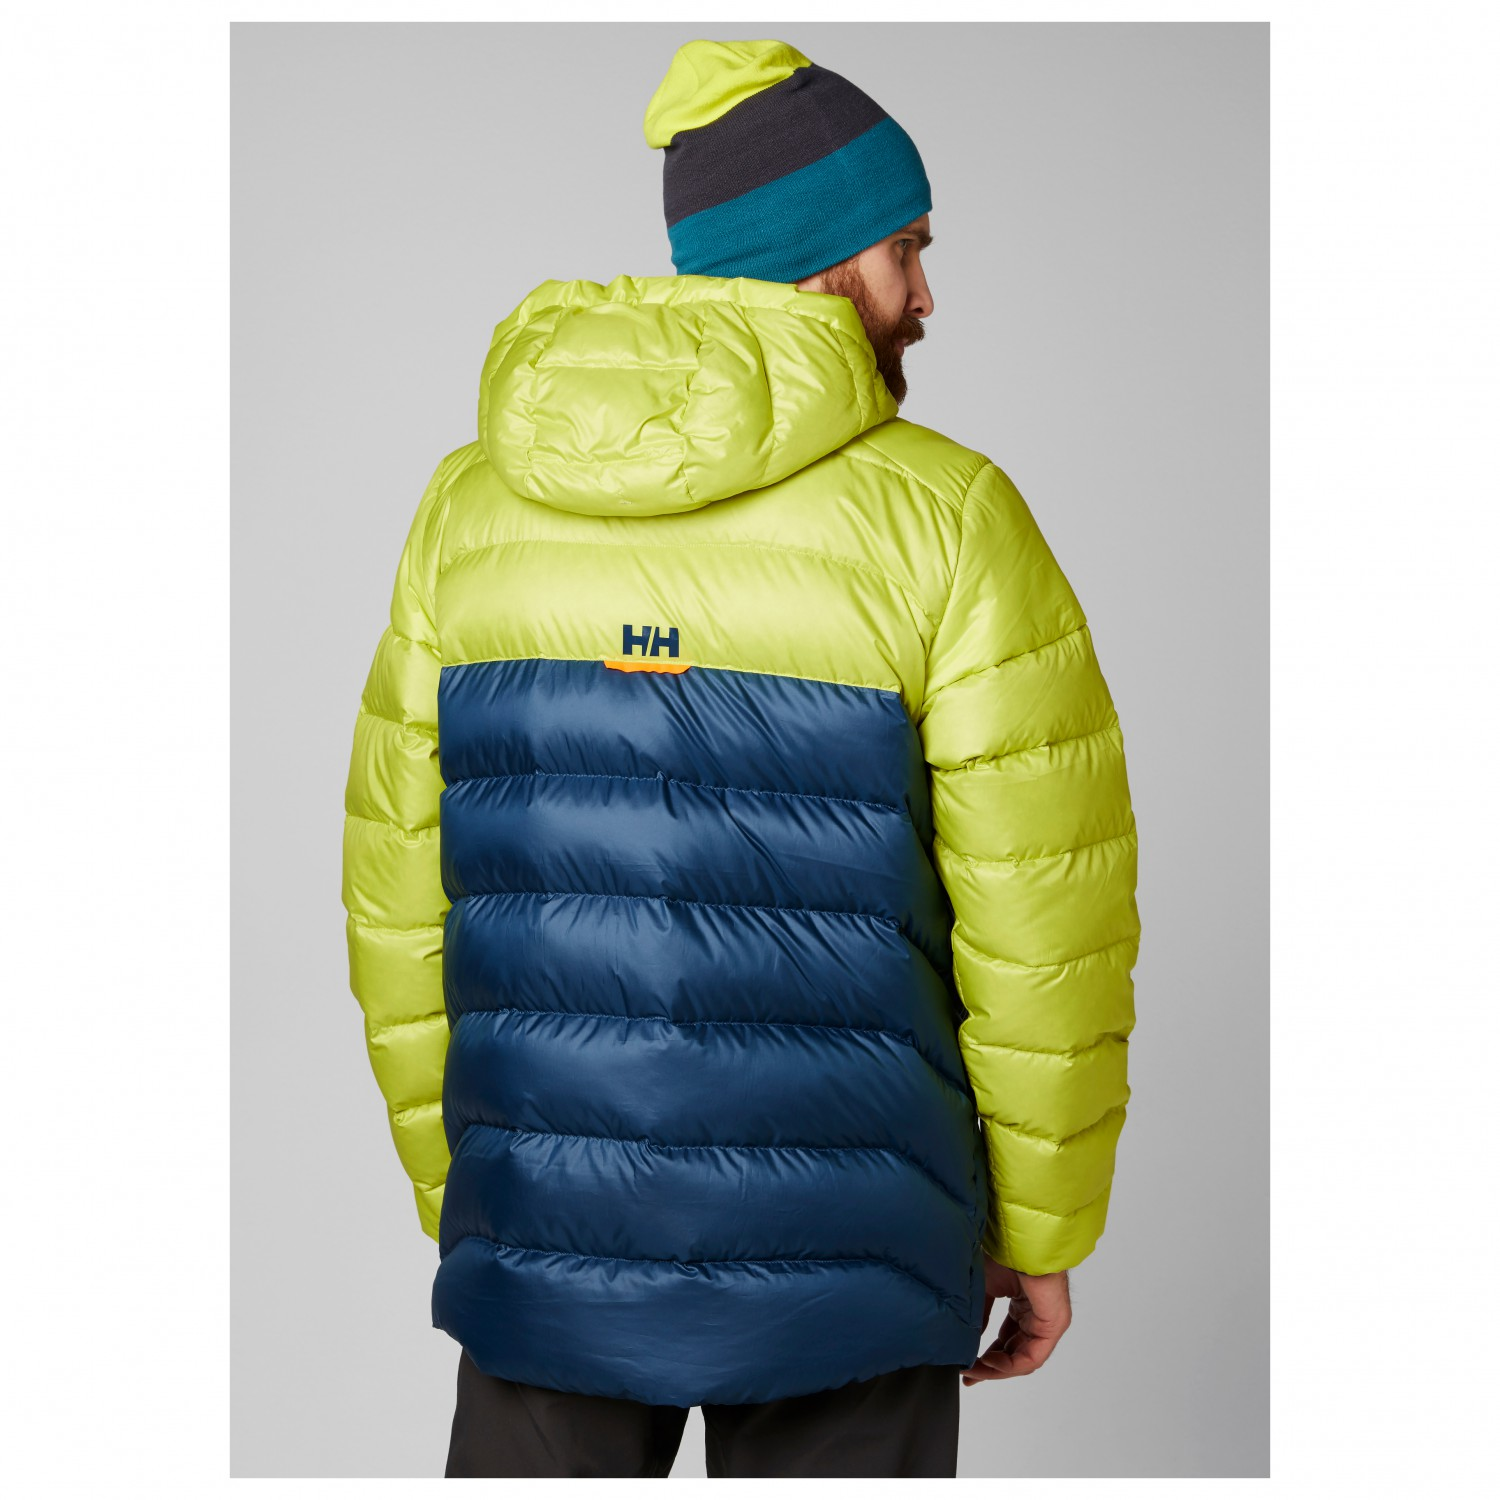 77979e2df Helly Hansen Vanir Glacier Down Jacket - Down jacket Men's | Buy ...